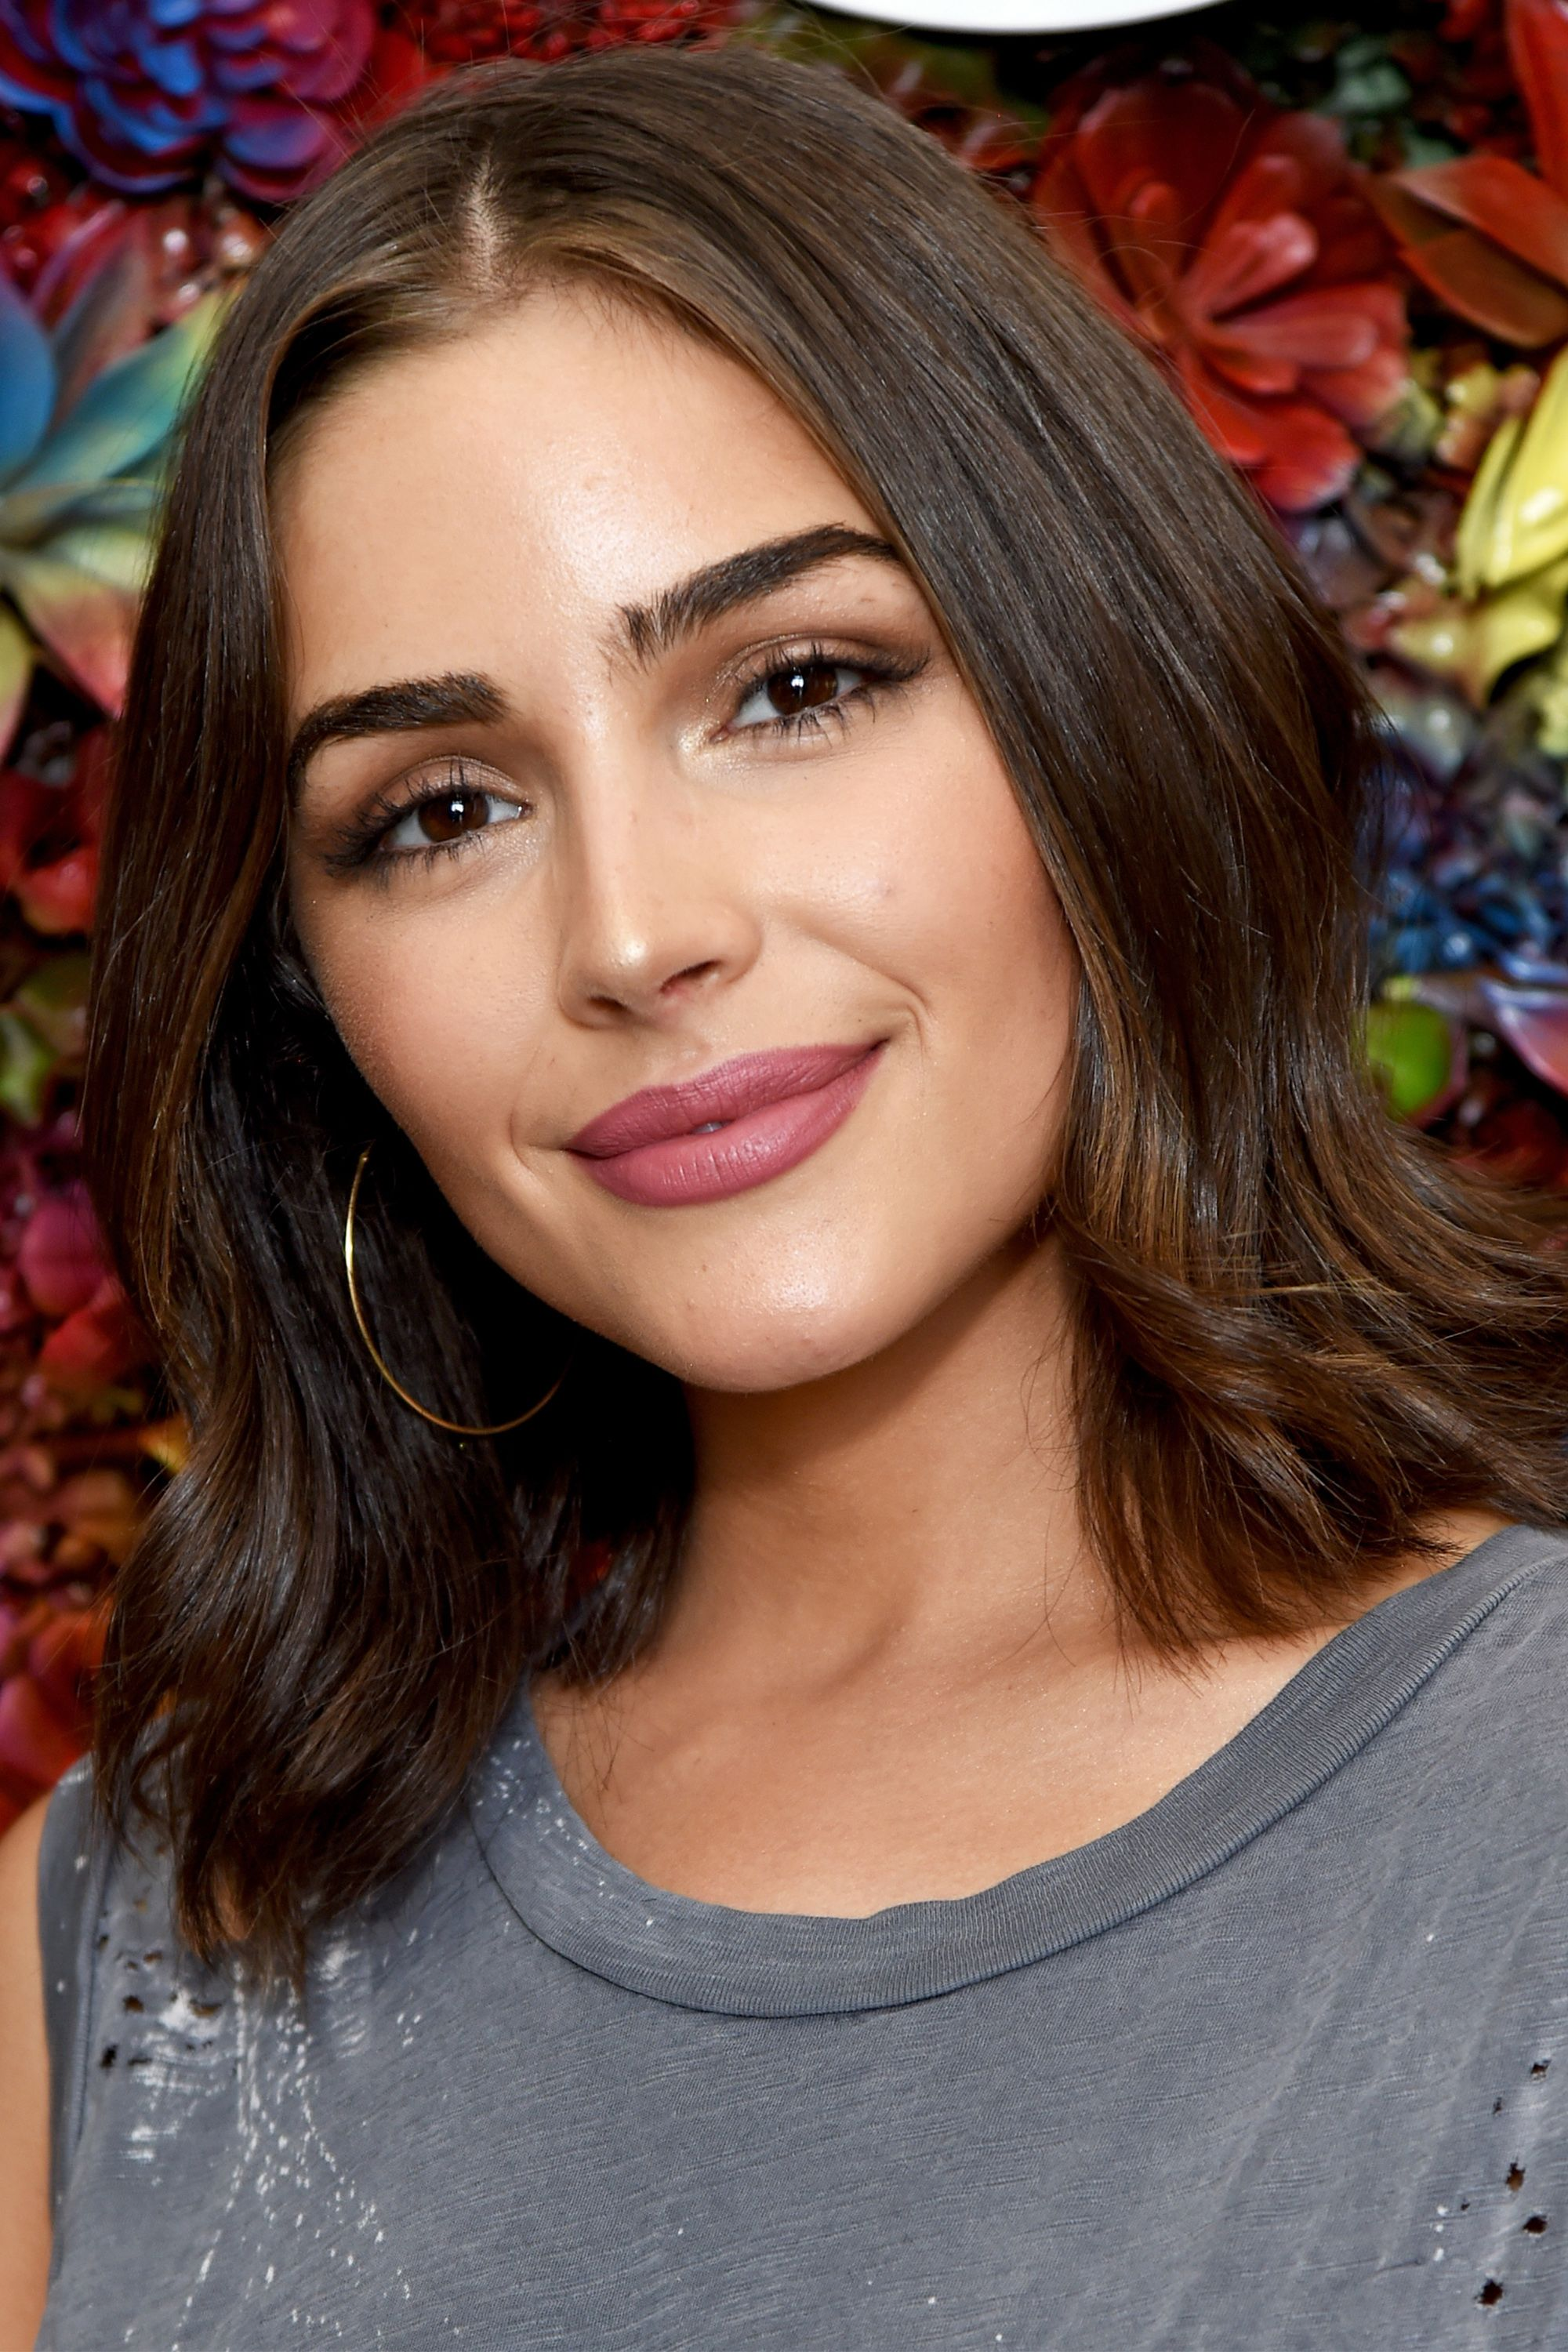 Celebrity Hairstyles: Trendy Hairstyle and Makeup Ideas for 2019